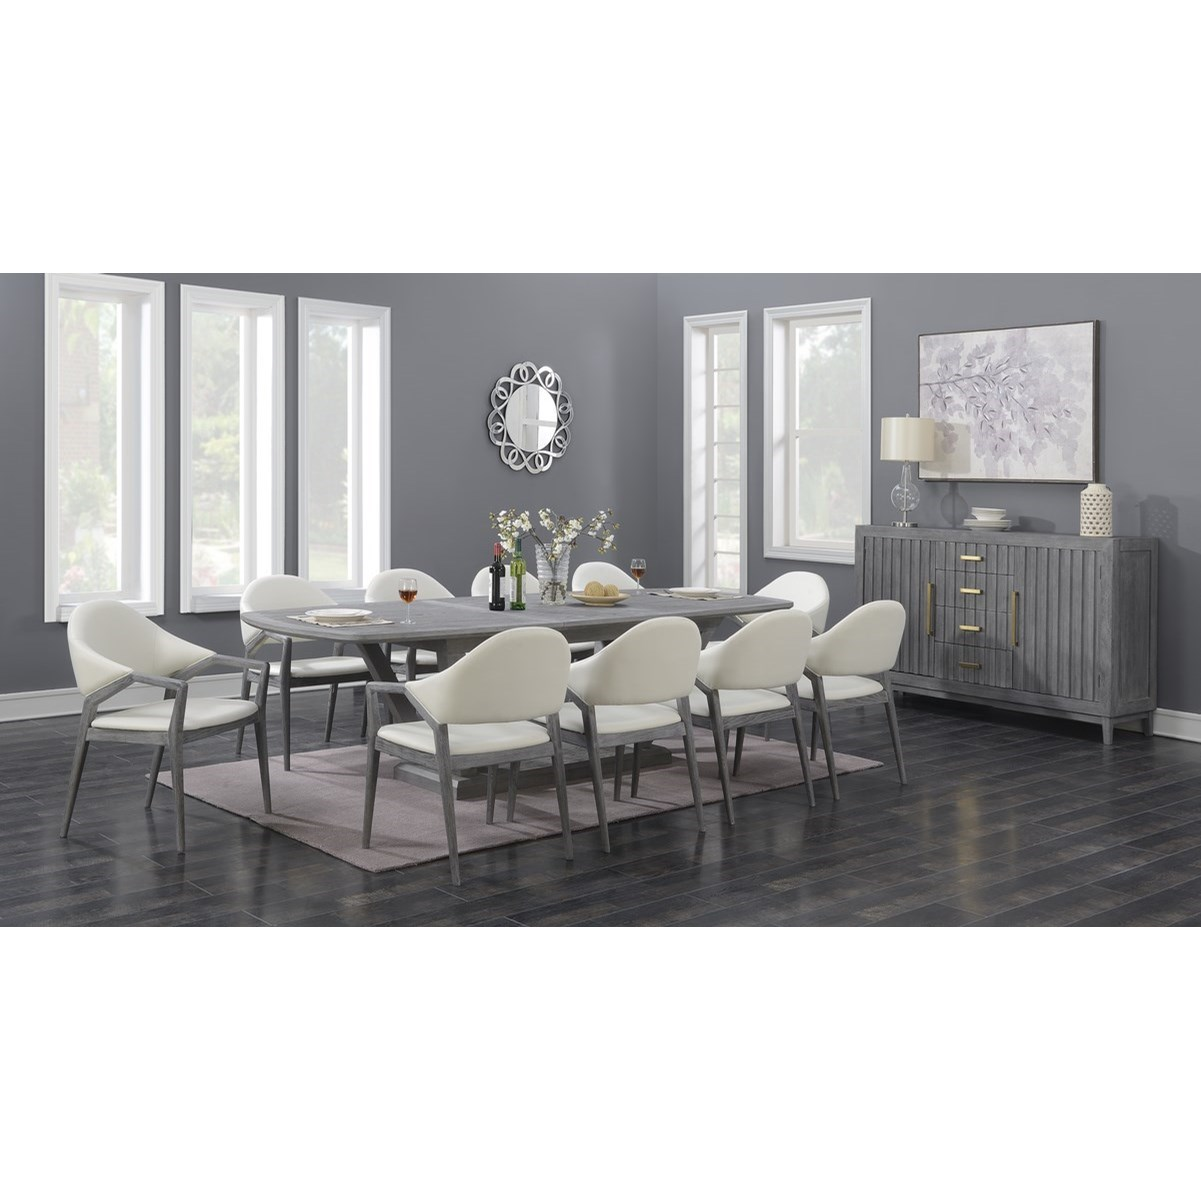 Carrera Formal Dining Group by Emerald at Northeast Factory Direct